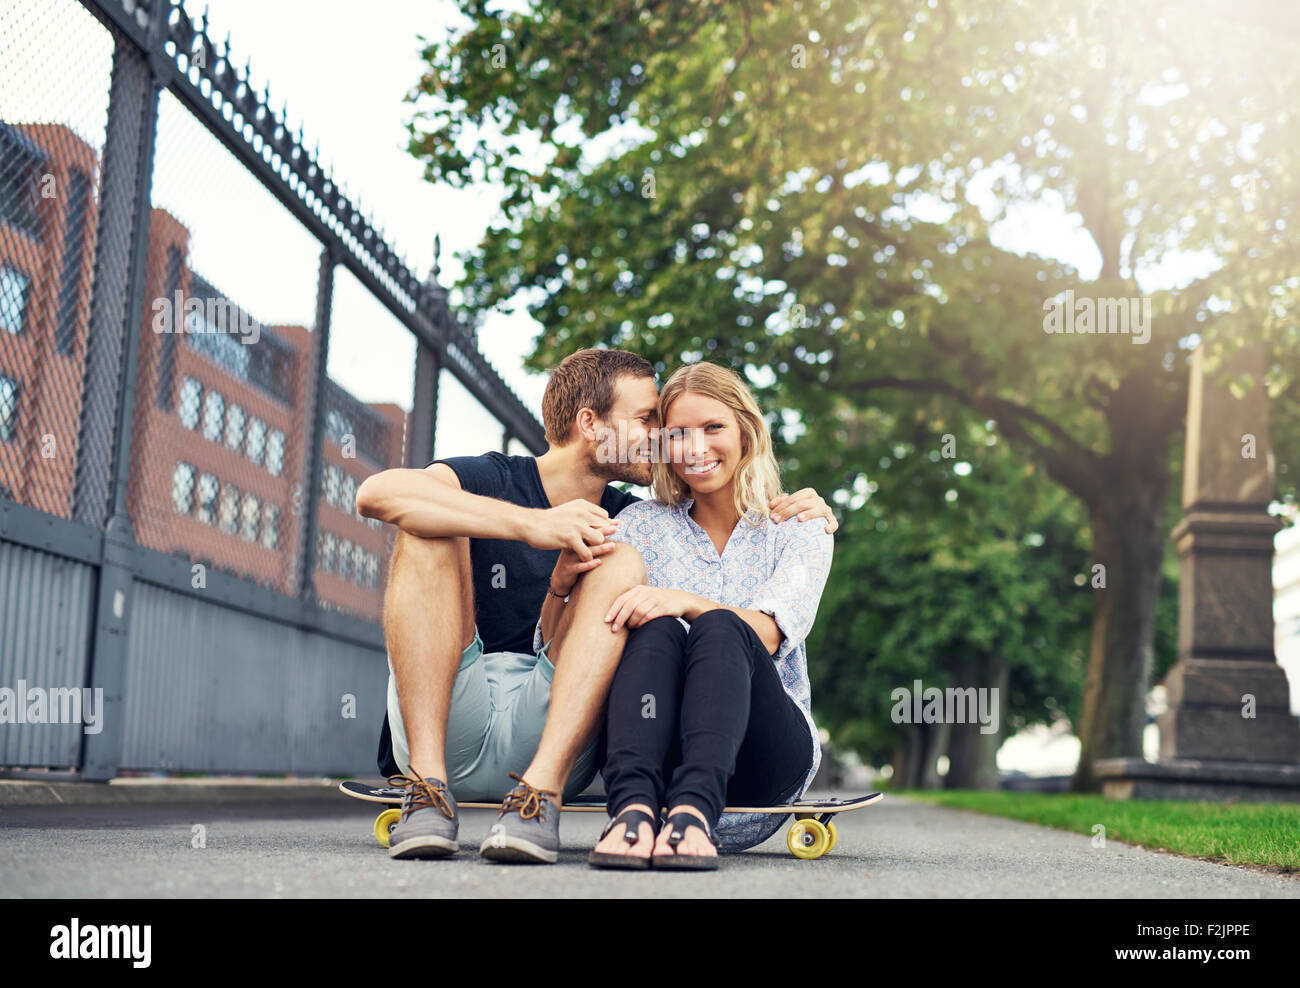 Man caressing woman in a charming way, big city couple - Stock Image